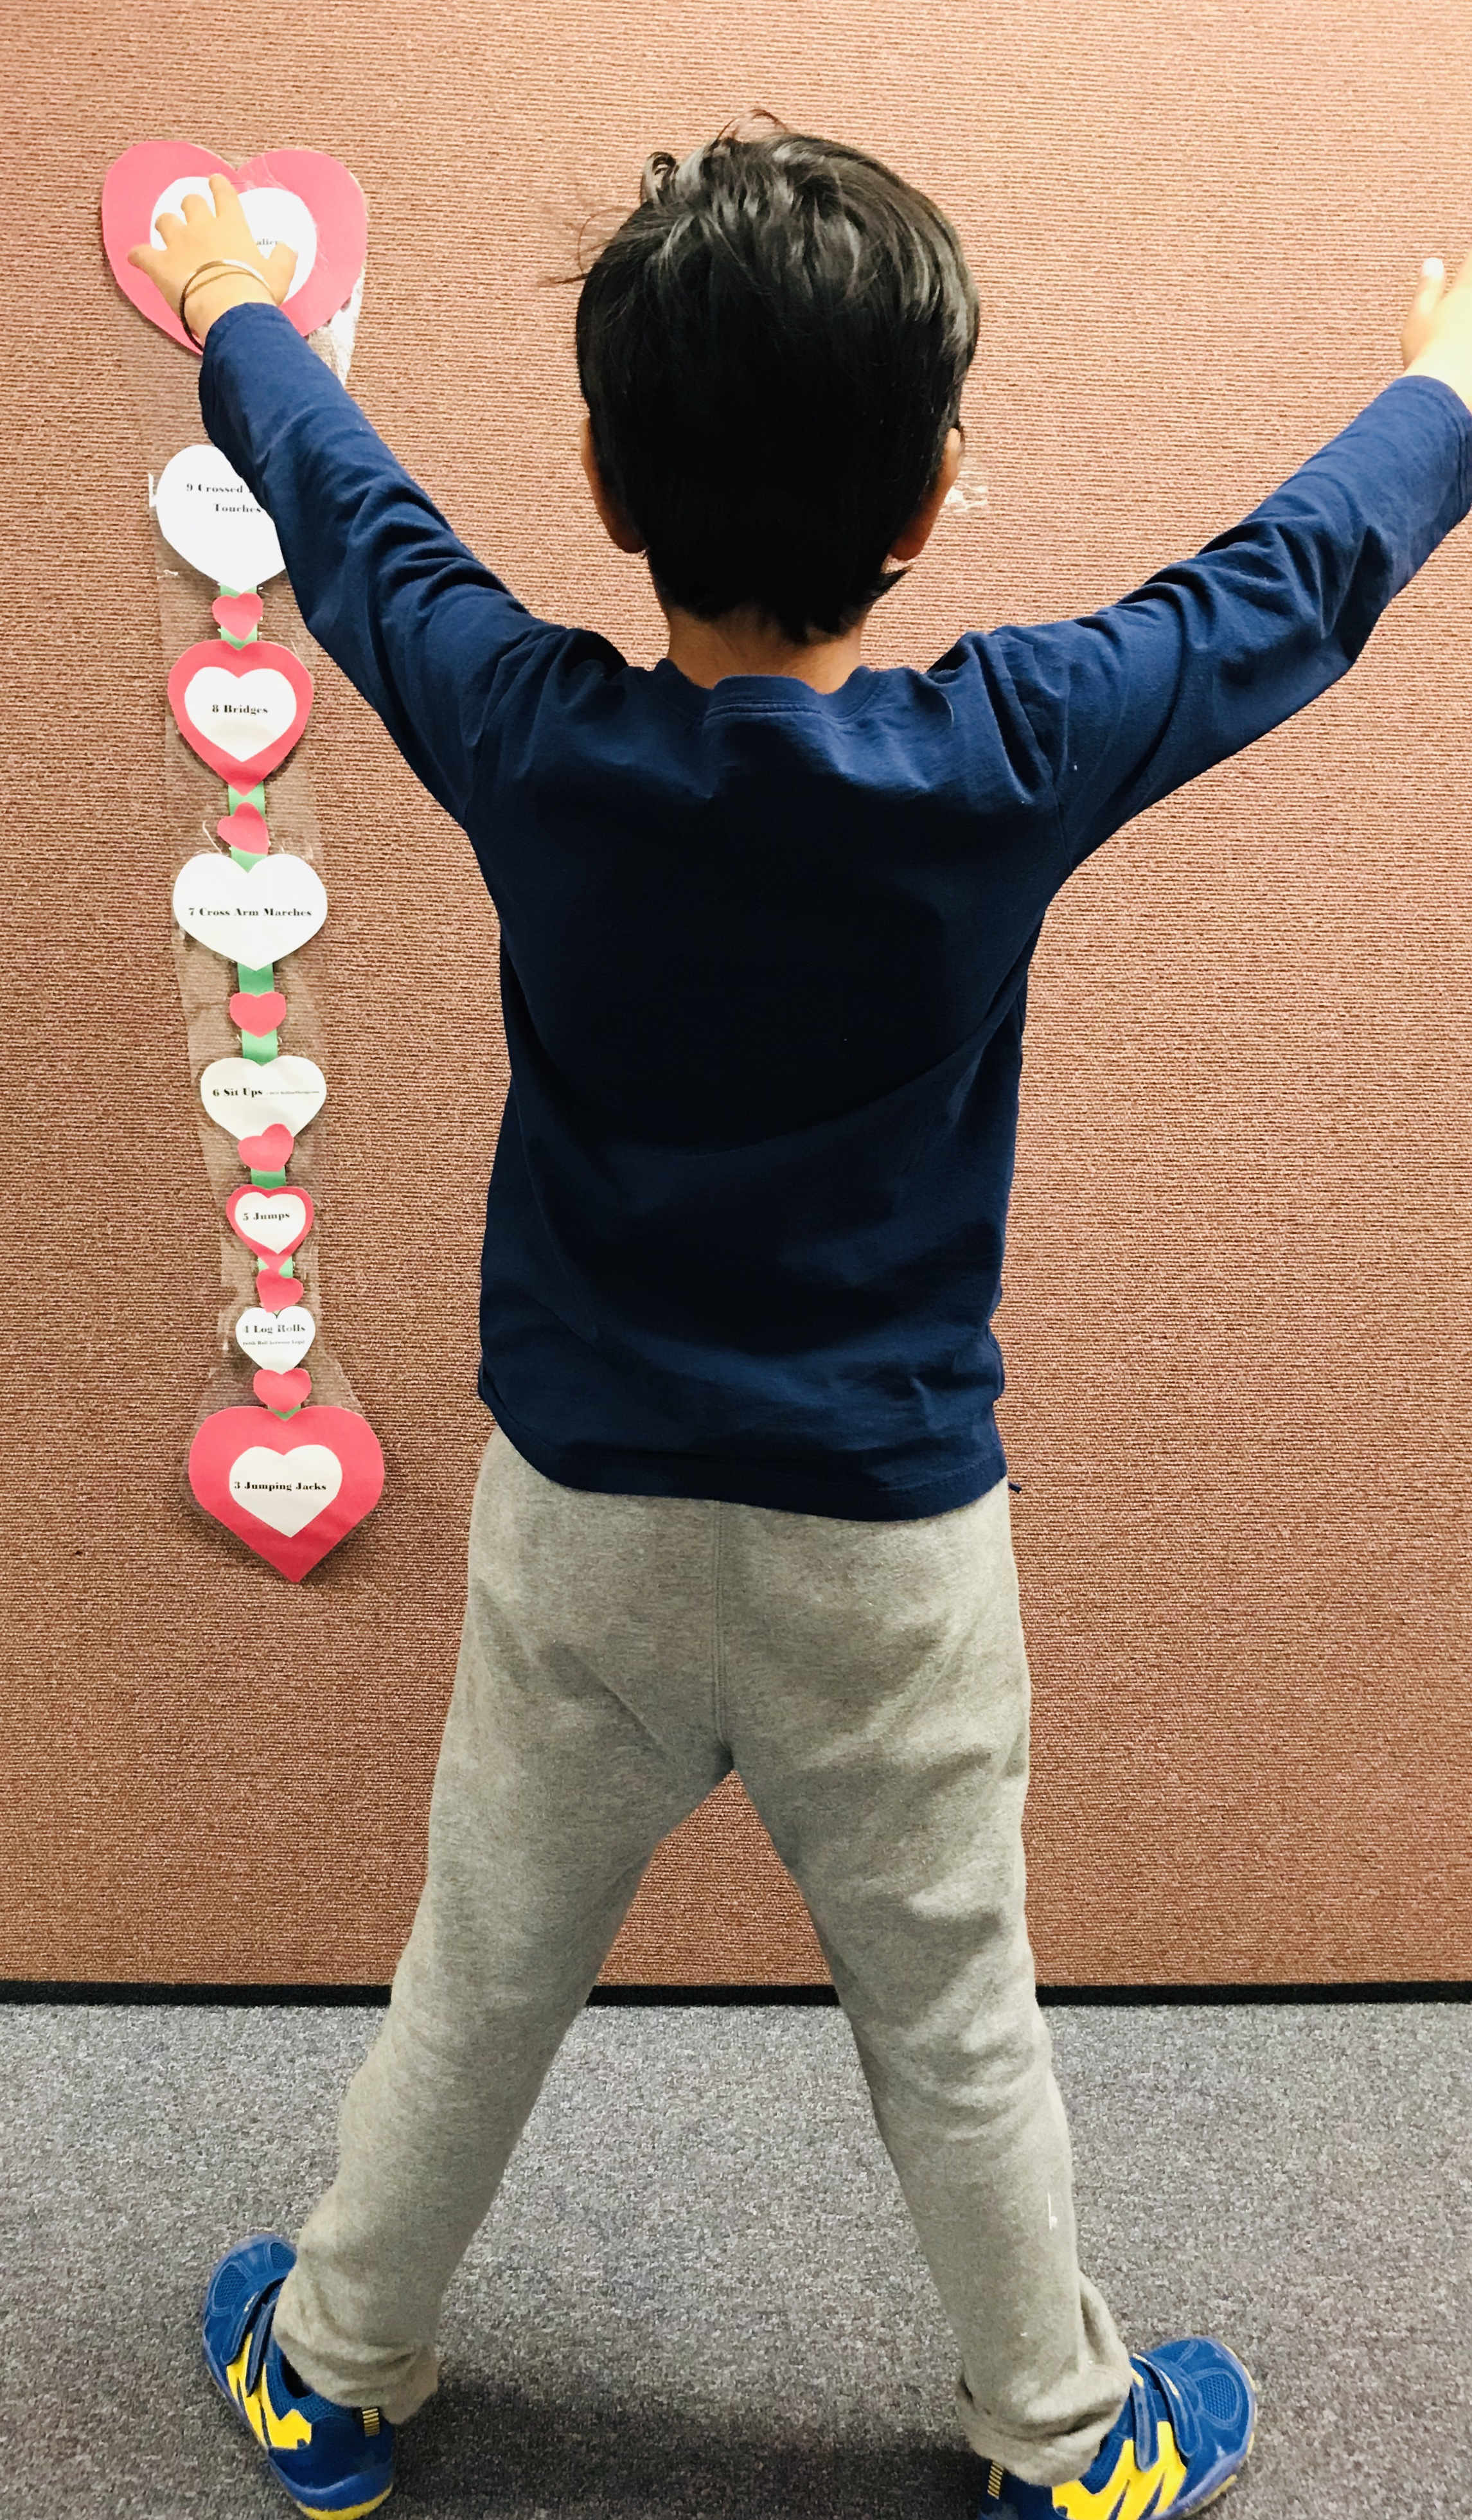 Kid standing and stretching to Heart papers